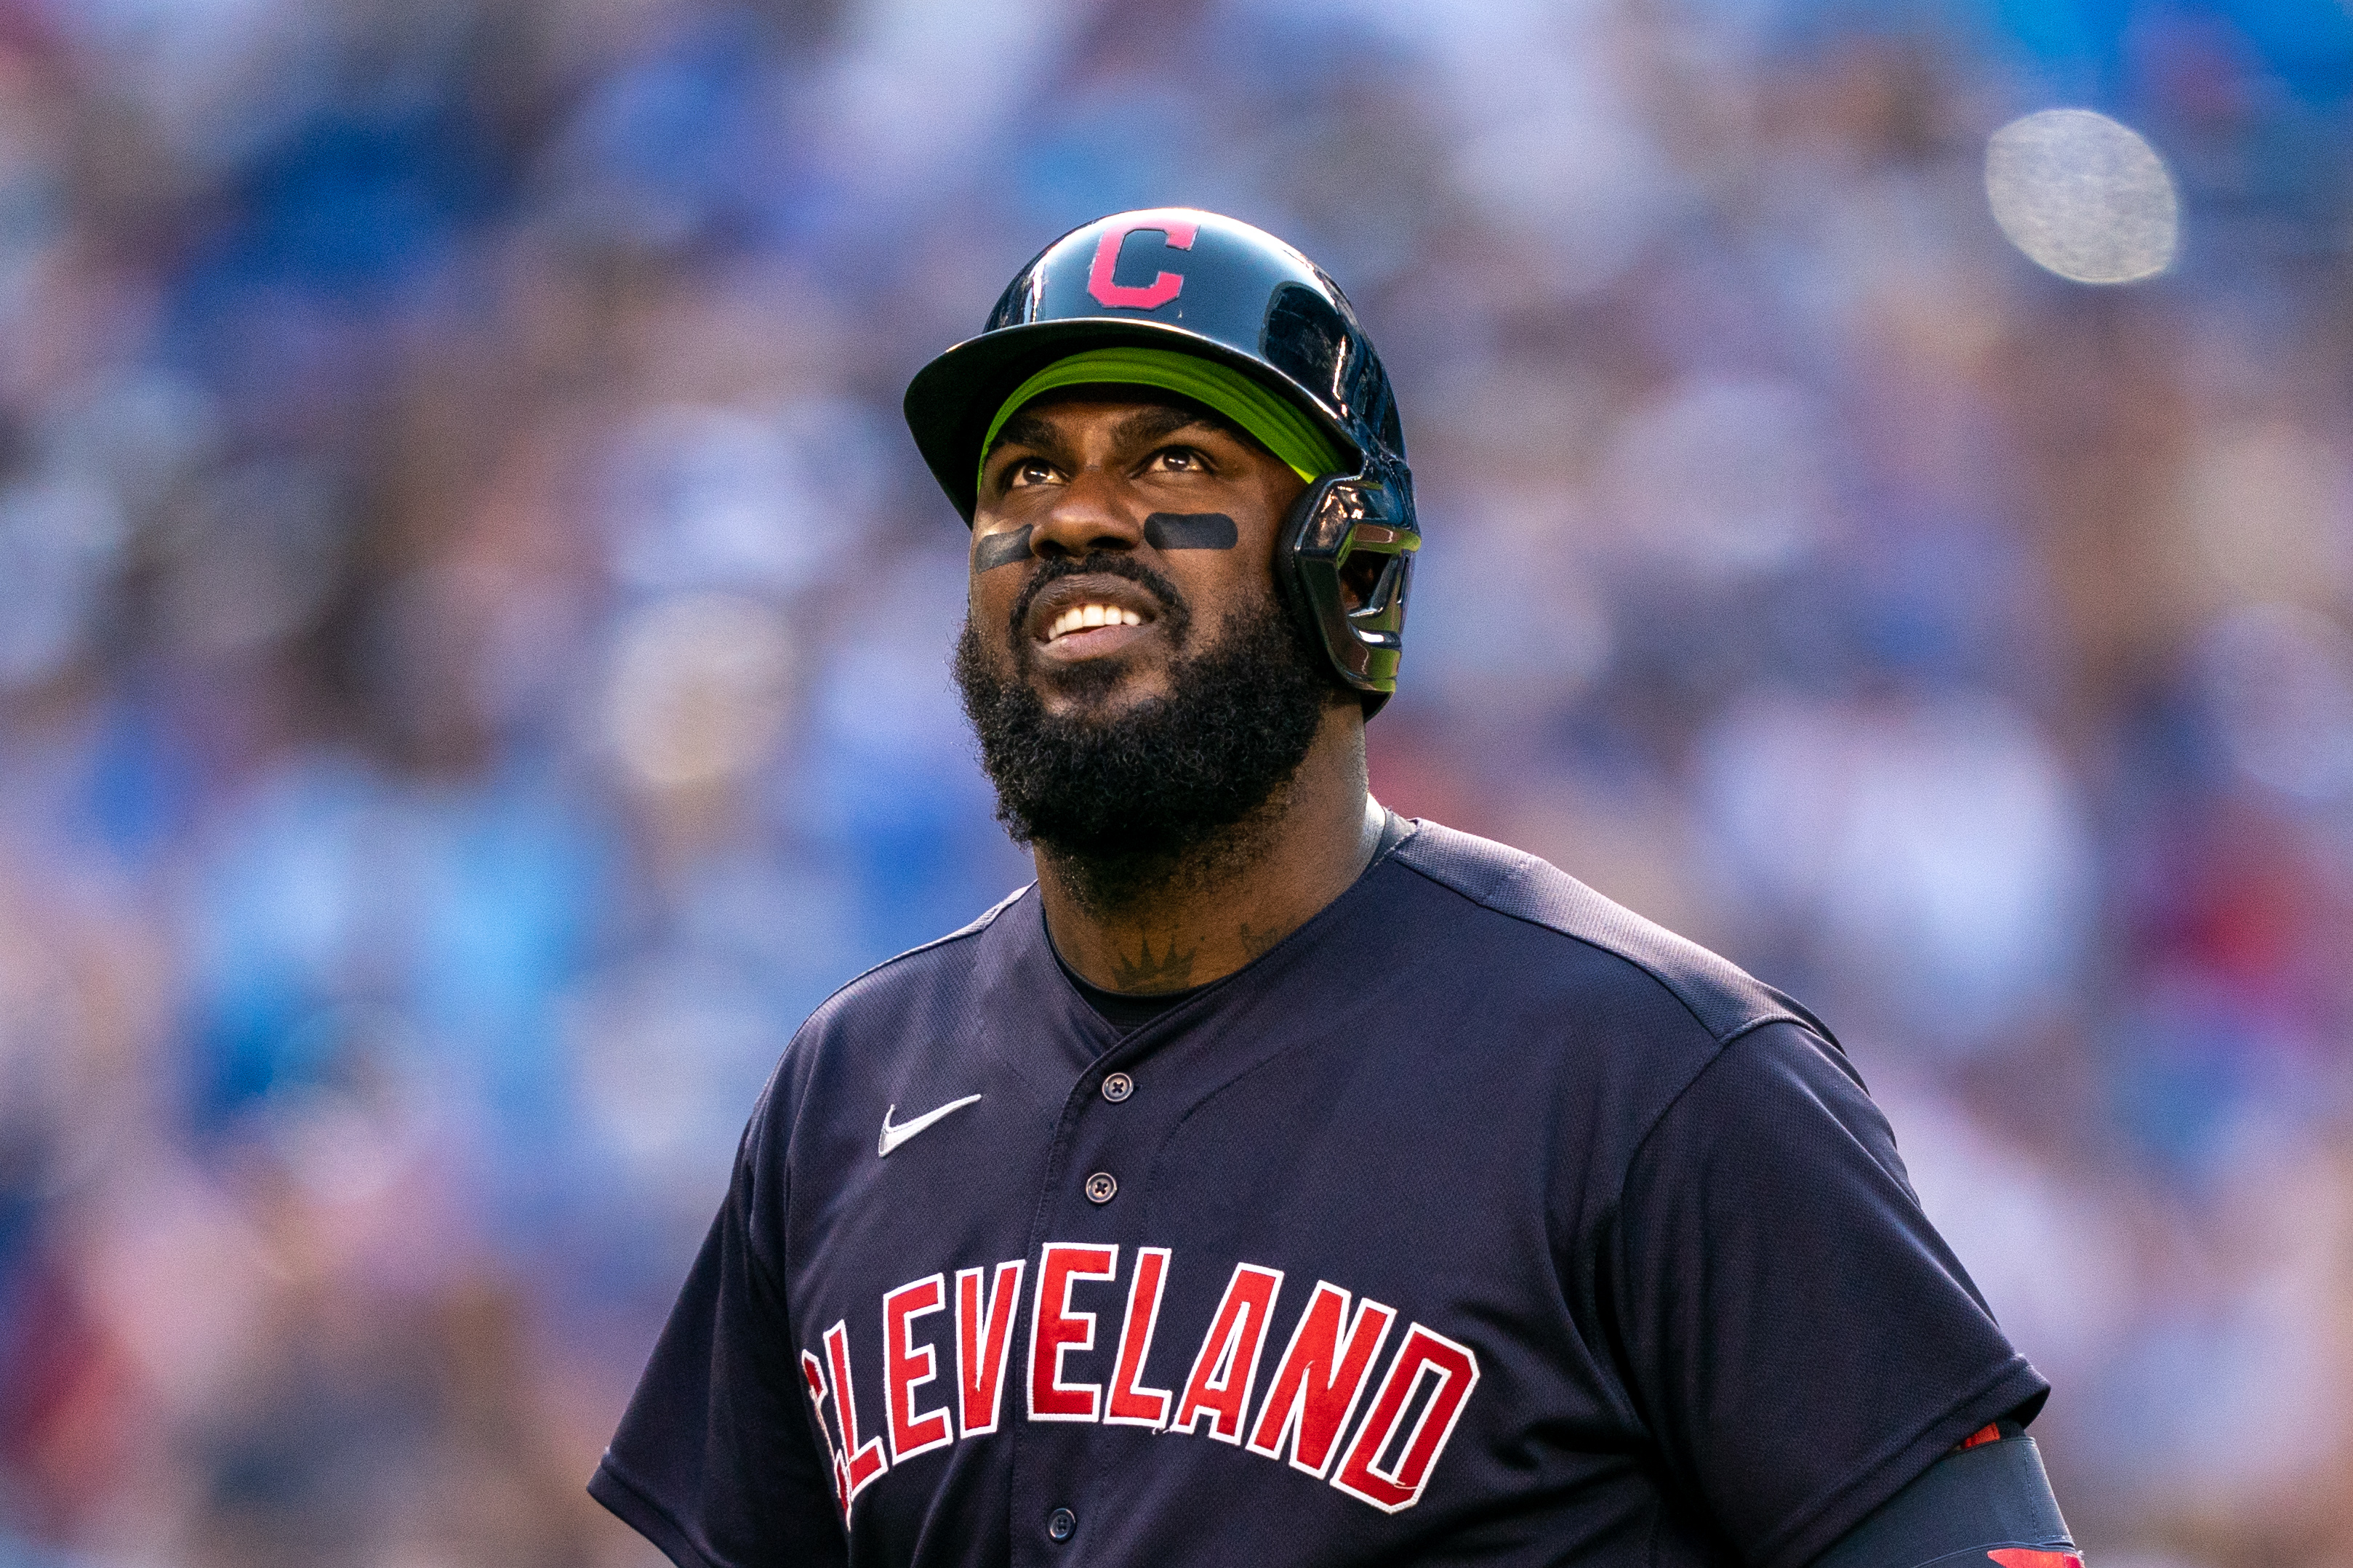 Oakland Athletics vs Cleveland Indians Prediction, 8/11/2021 MLB Pick, Tips and Odds